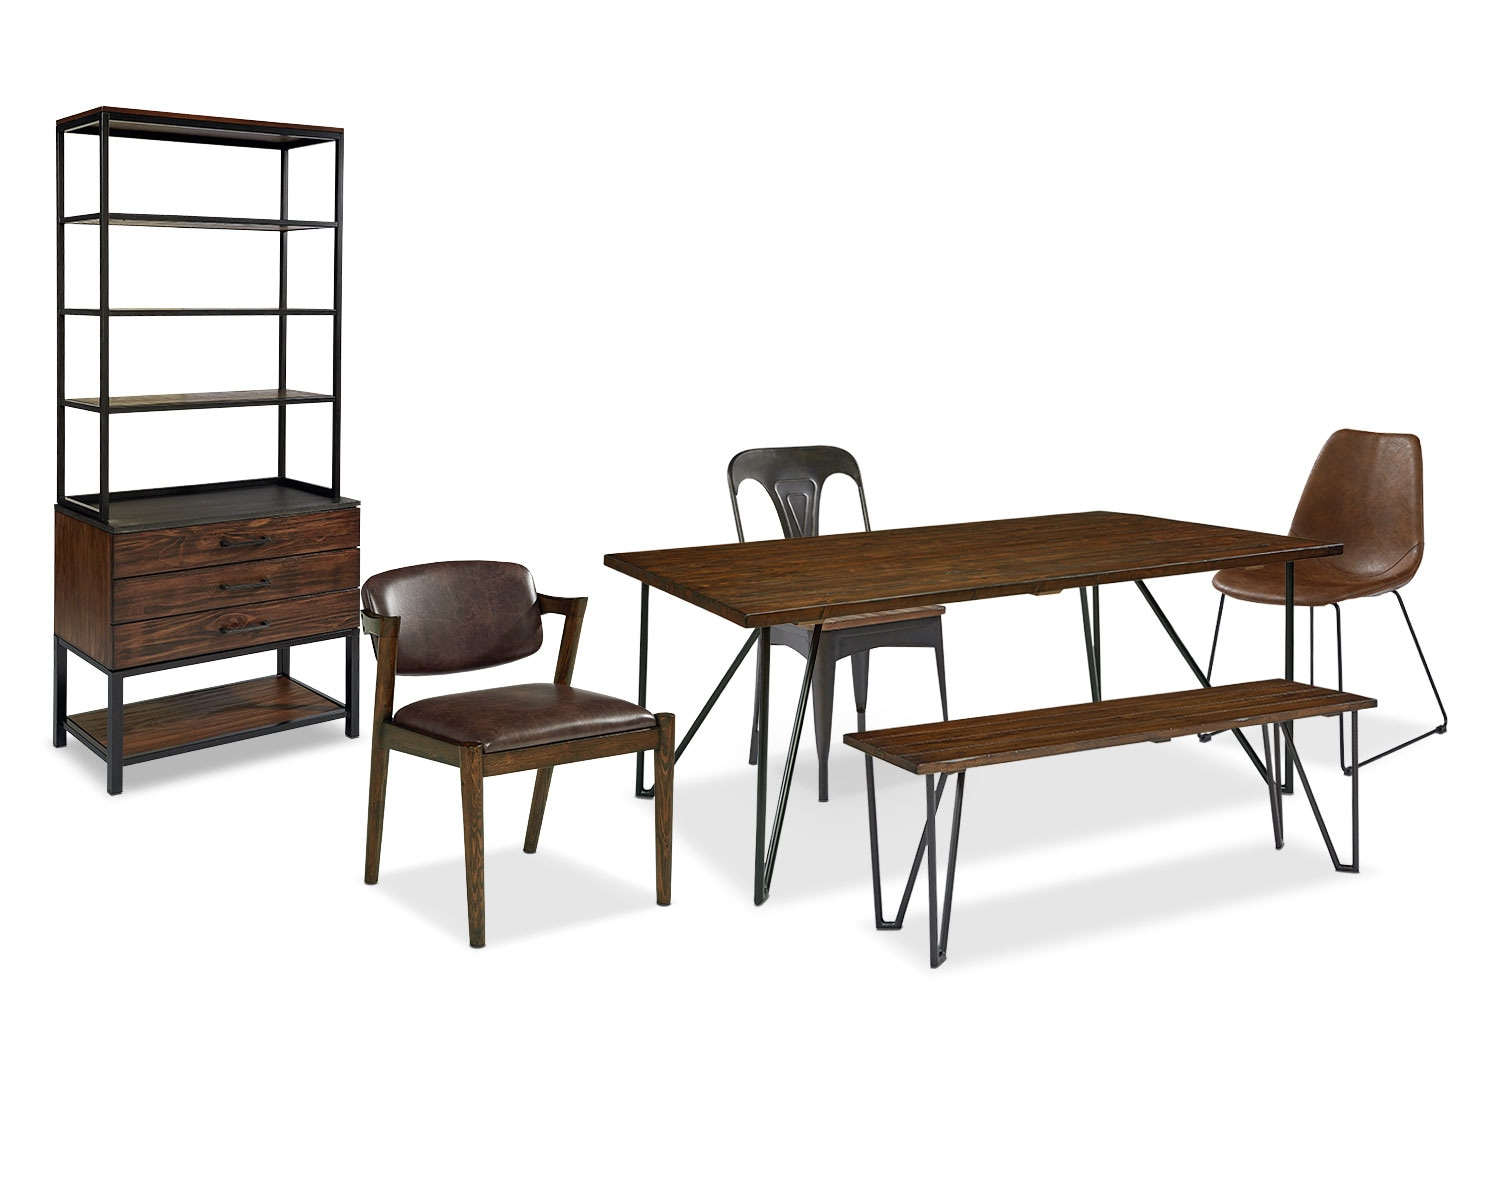 The Boho Dining Room Collection